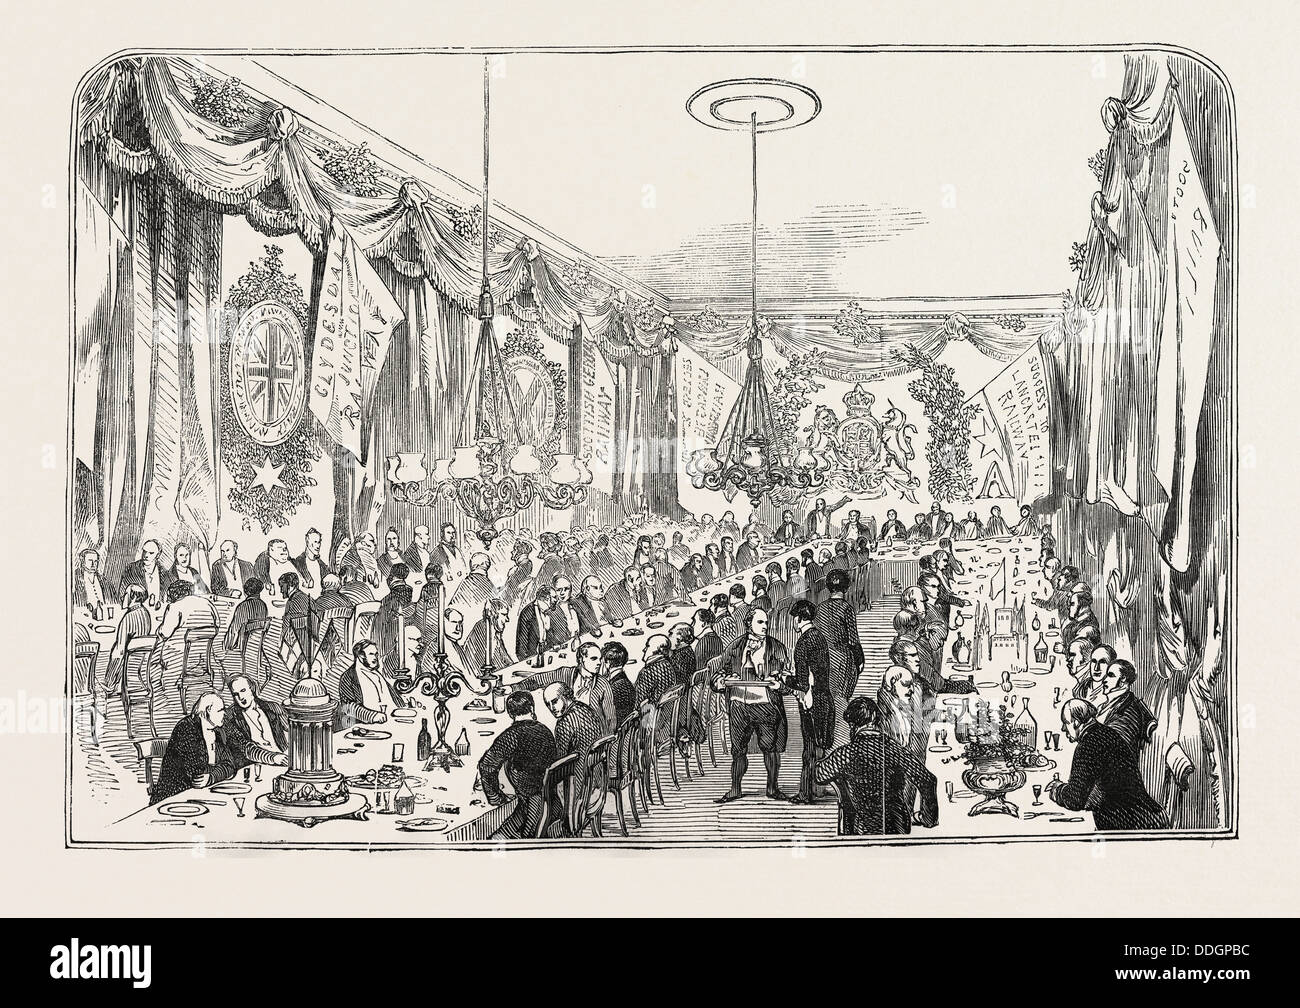 OPENING OF THE LANCASTER AND CARLISLE RAILWAY: THE RAILWAY CONTRACTORS' DINNER, AT THE CROWN AND MITRE INN, - Stock Image